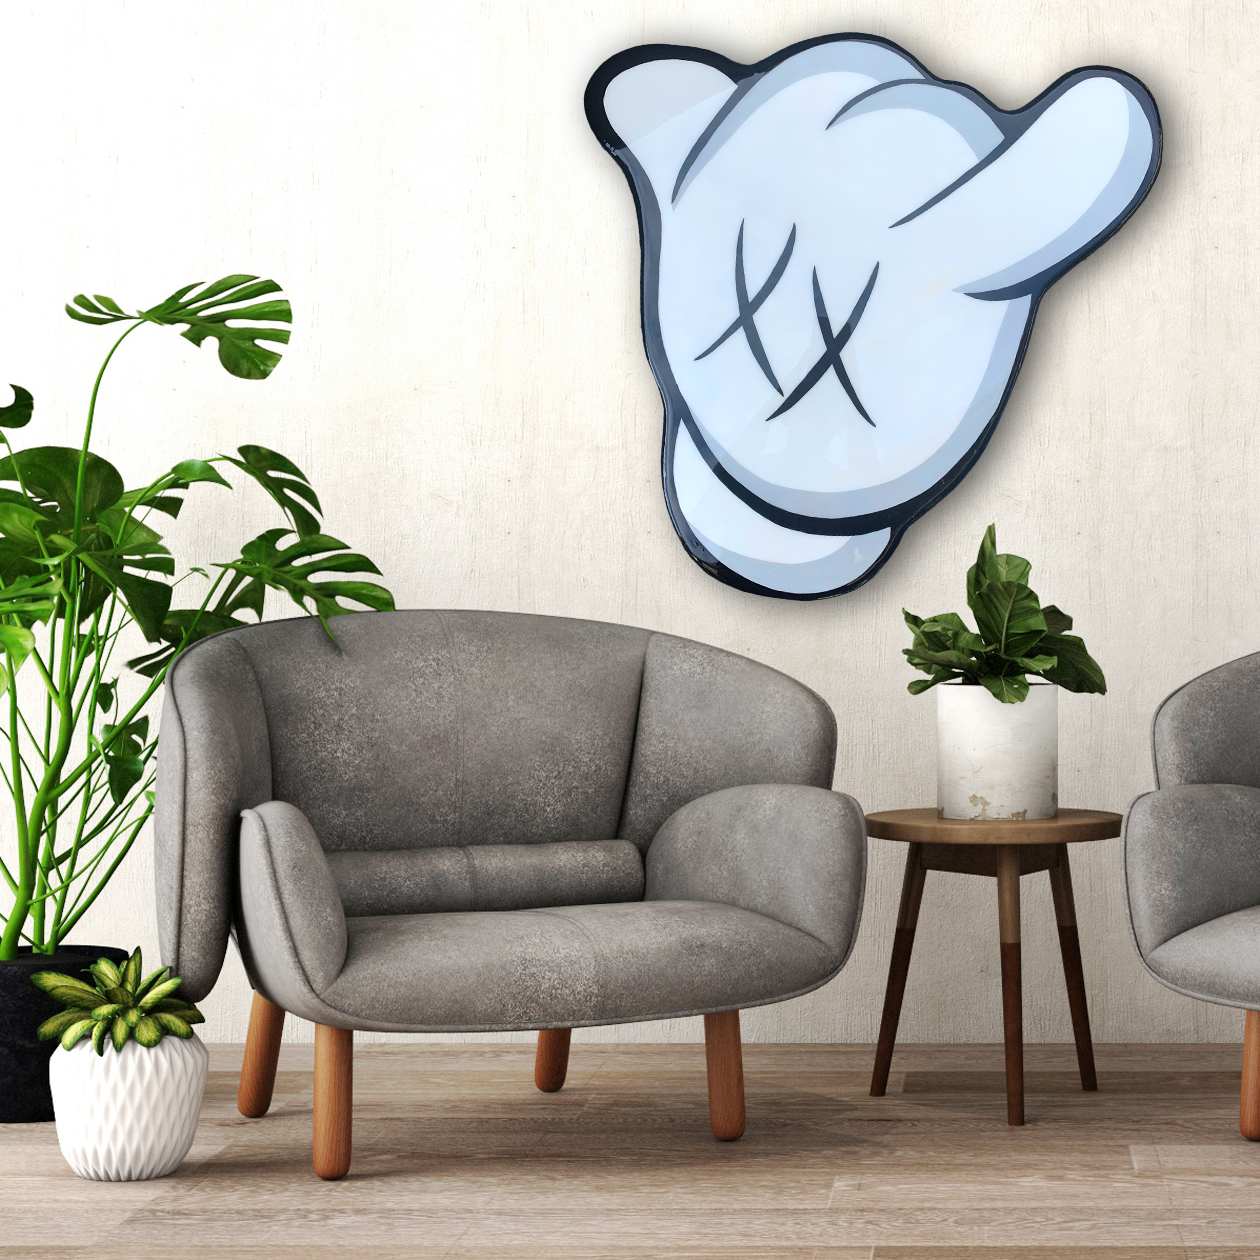 Hang Loose Kaws Inspired Wall Art by Idiot Box Art